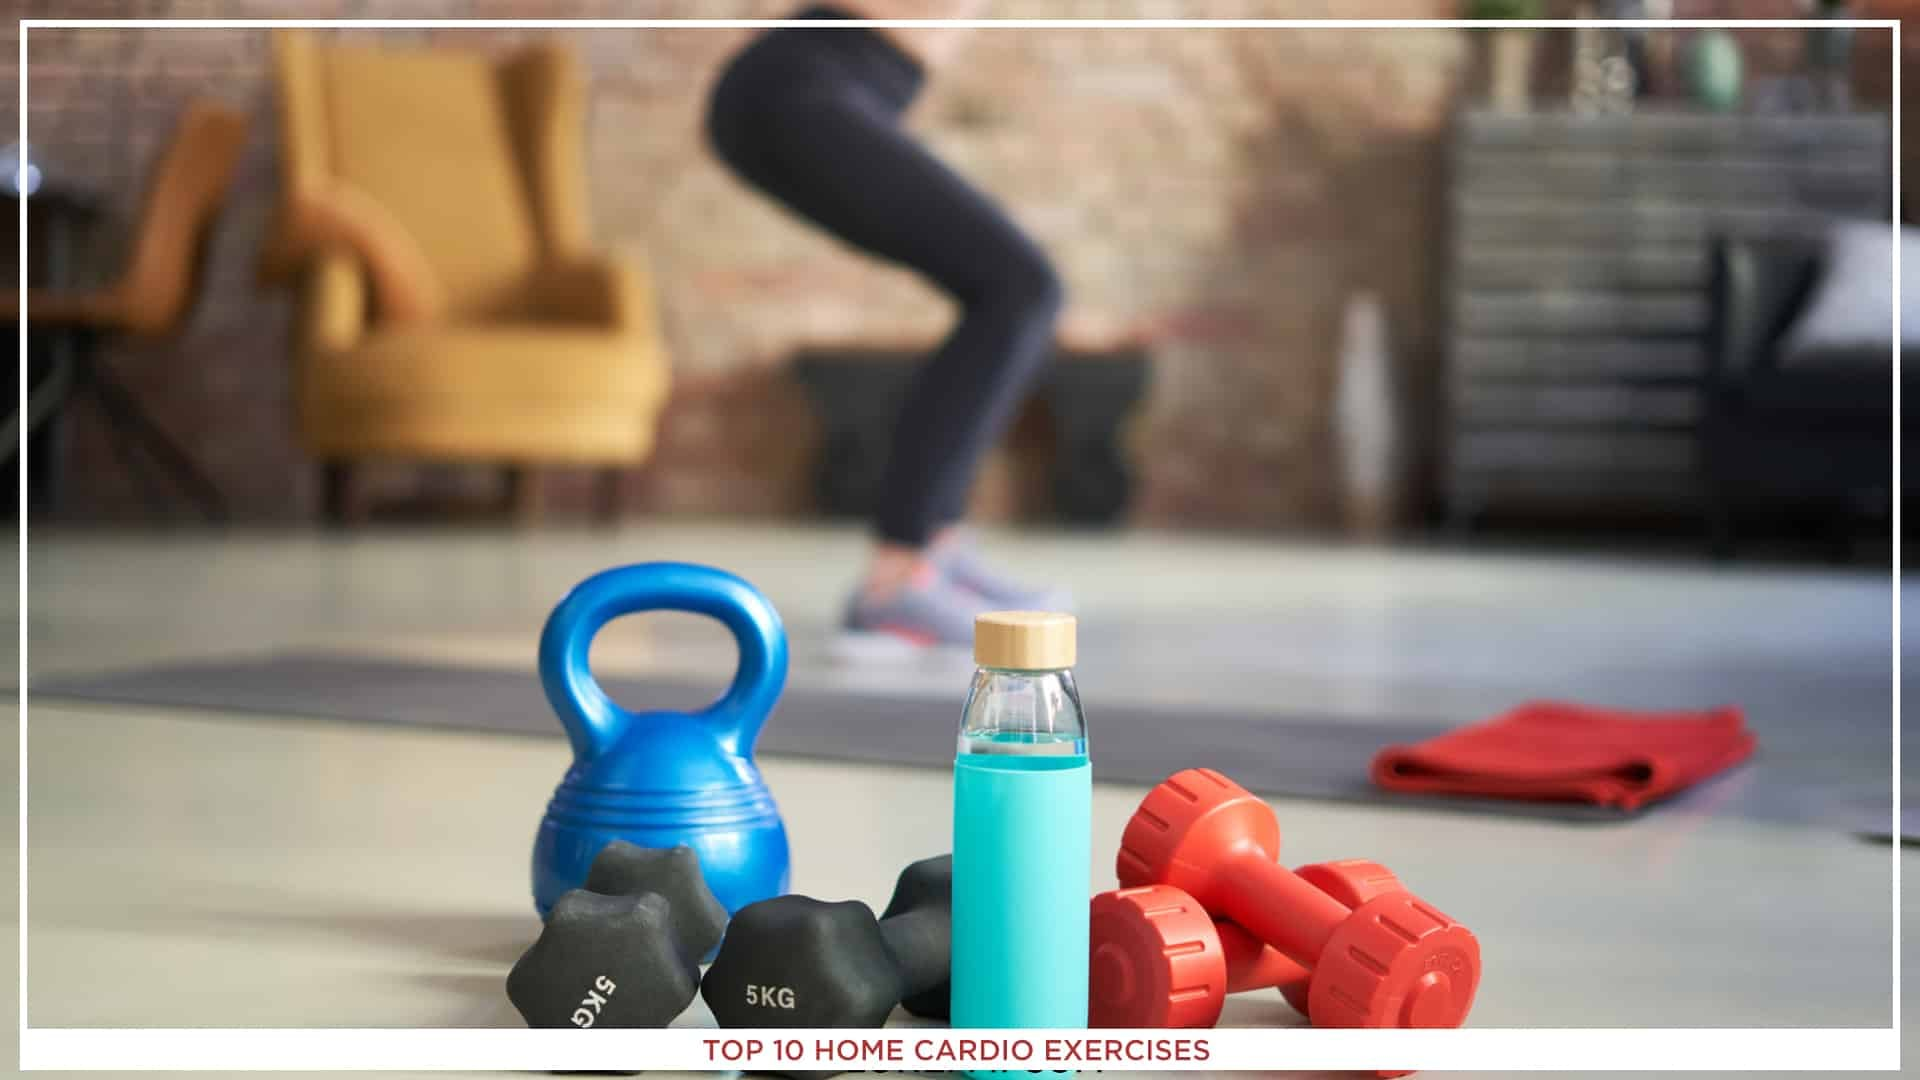 An image of small drumbbells, and a bottle of water, with a girl doing home cardio exercise in the background.